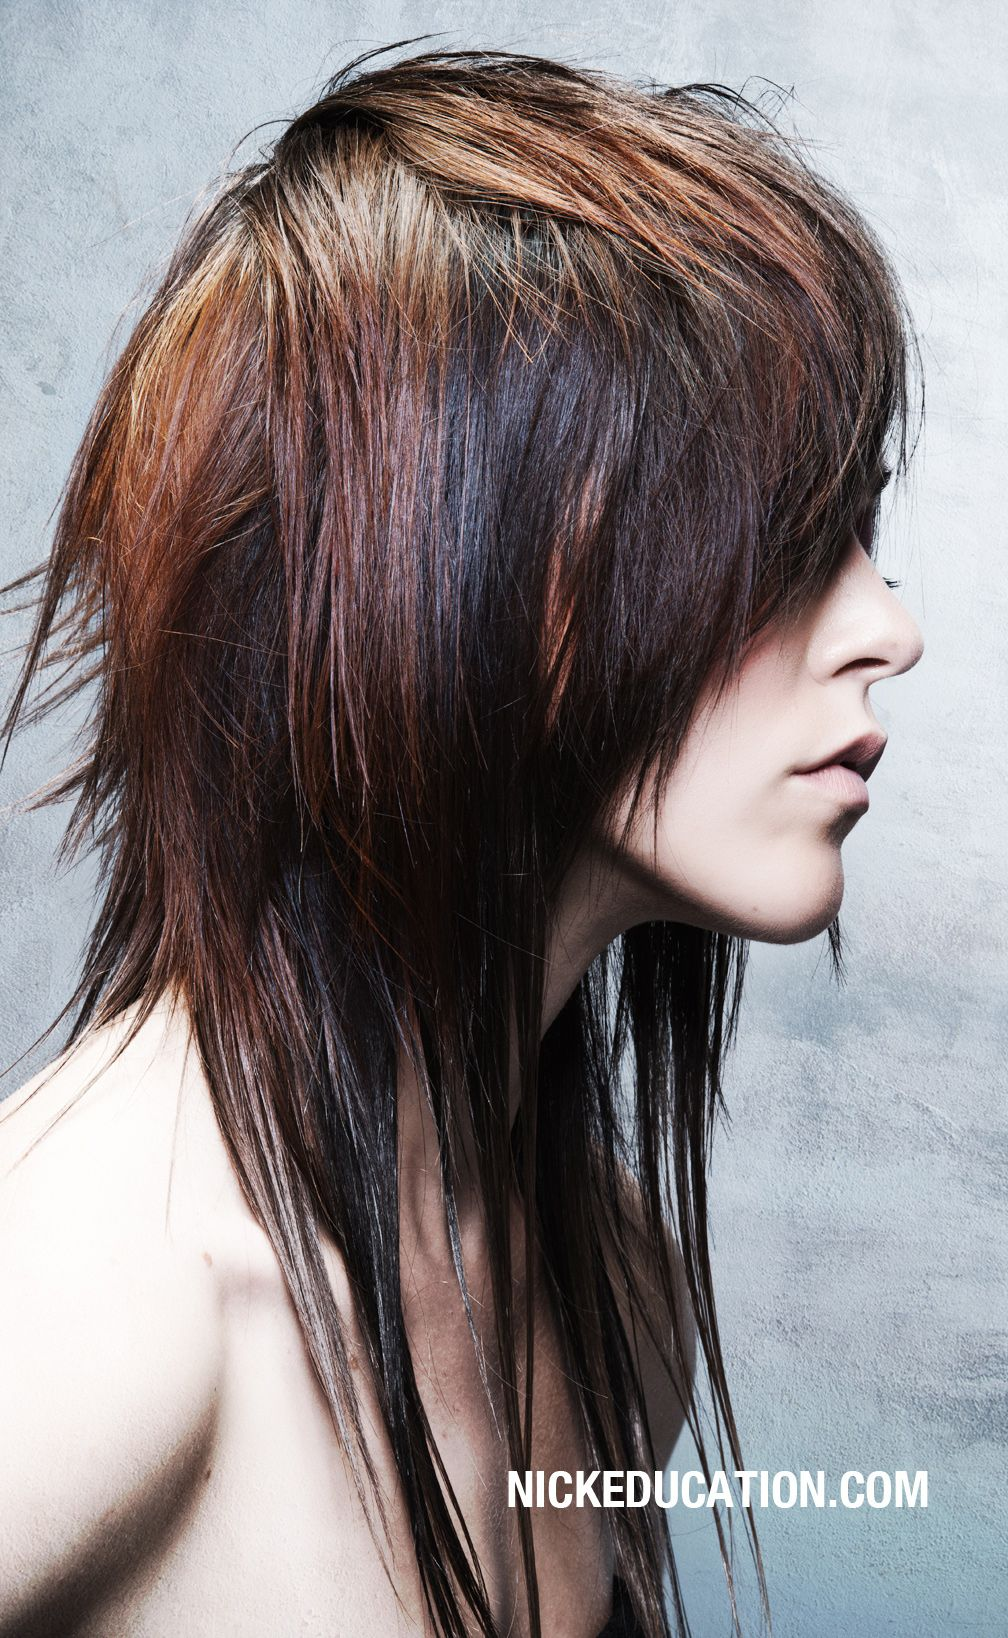 Pin on creative haircuts and color